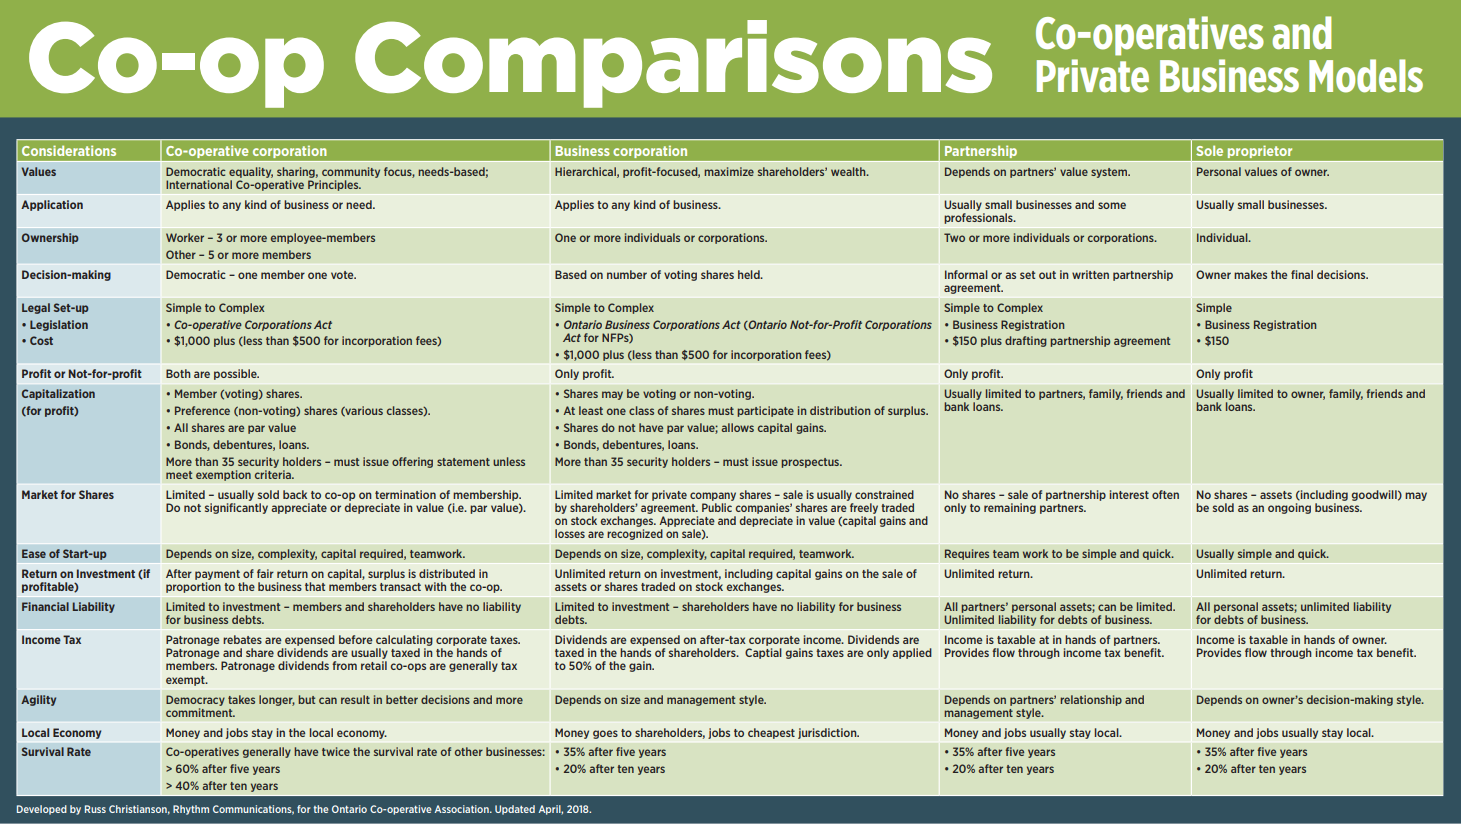 View or    download    the OCA's '   co-op comparison visual    to closely analyze the differences between a traditional corporate business and the co-op model.